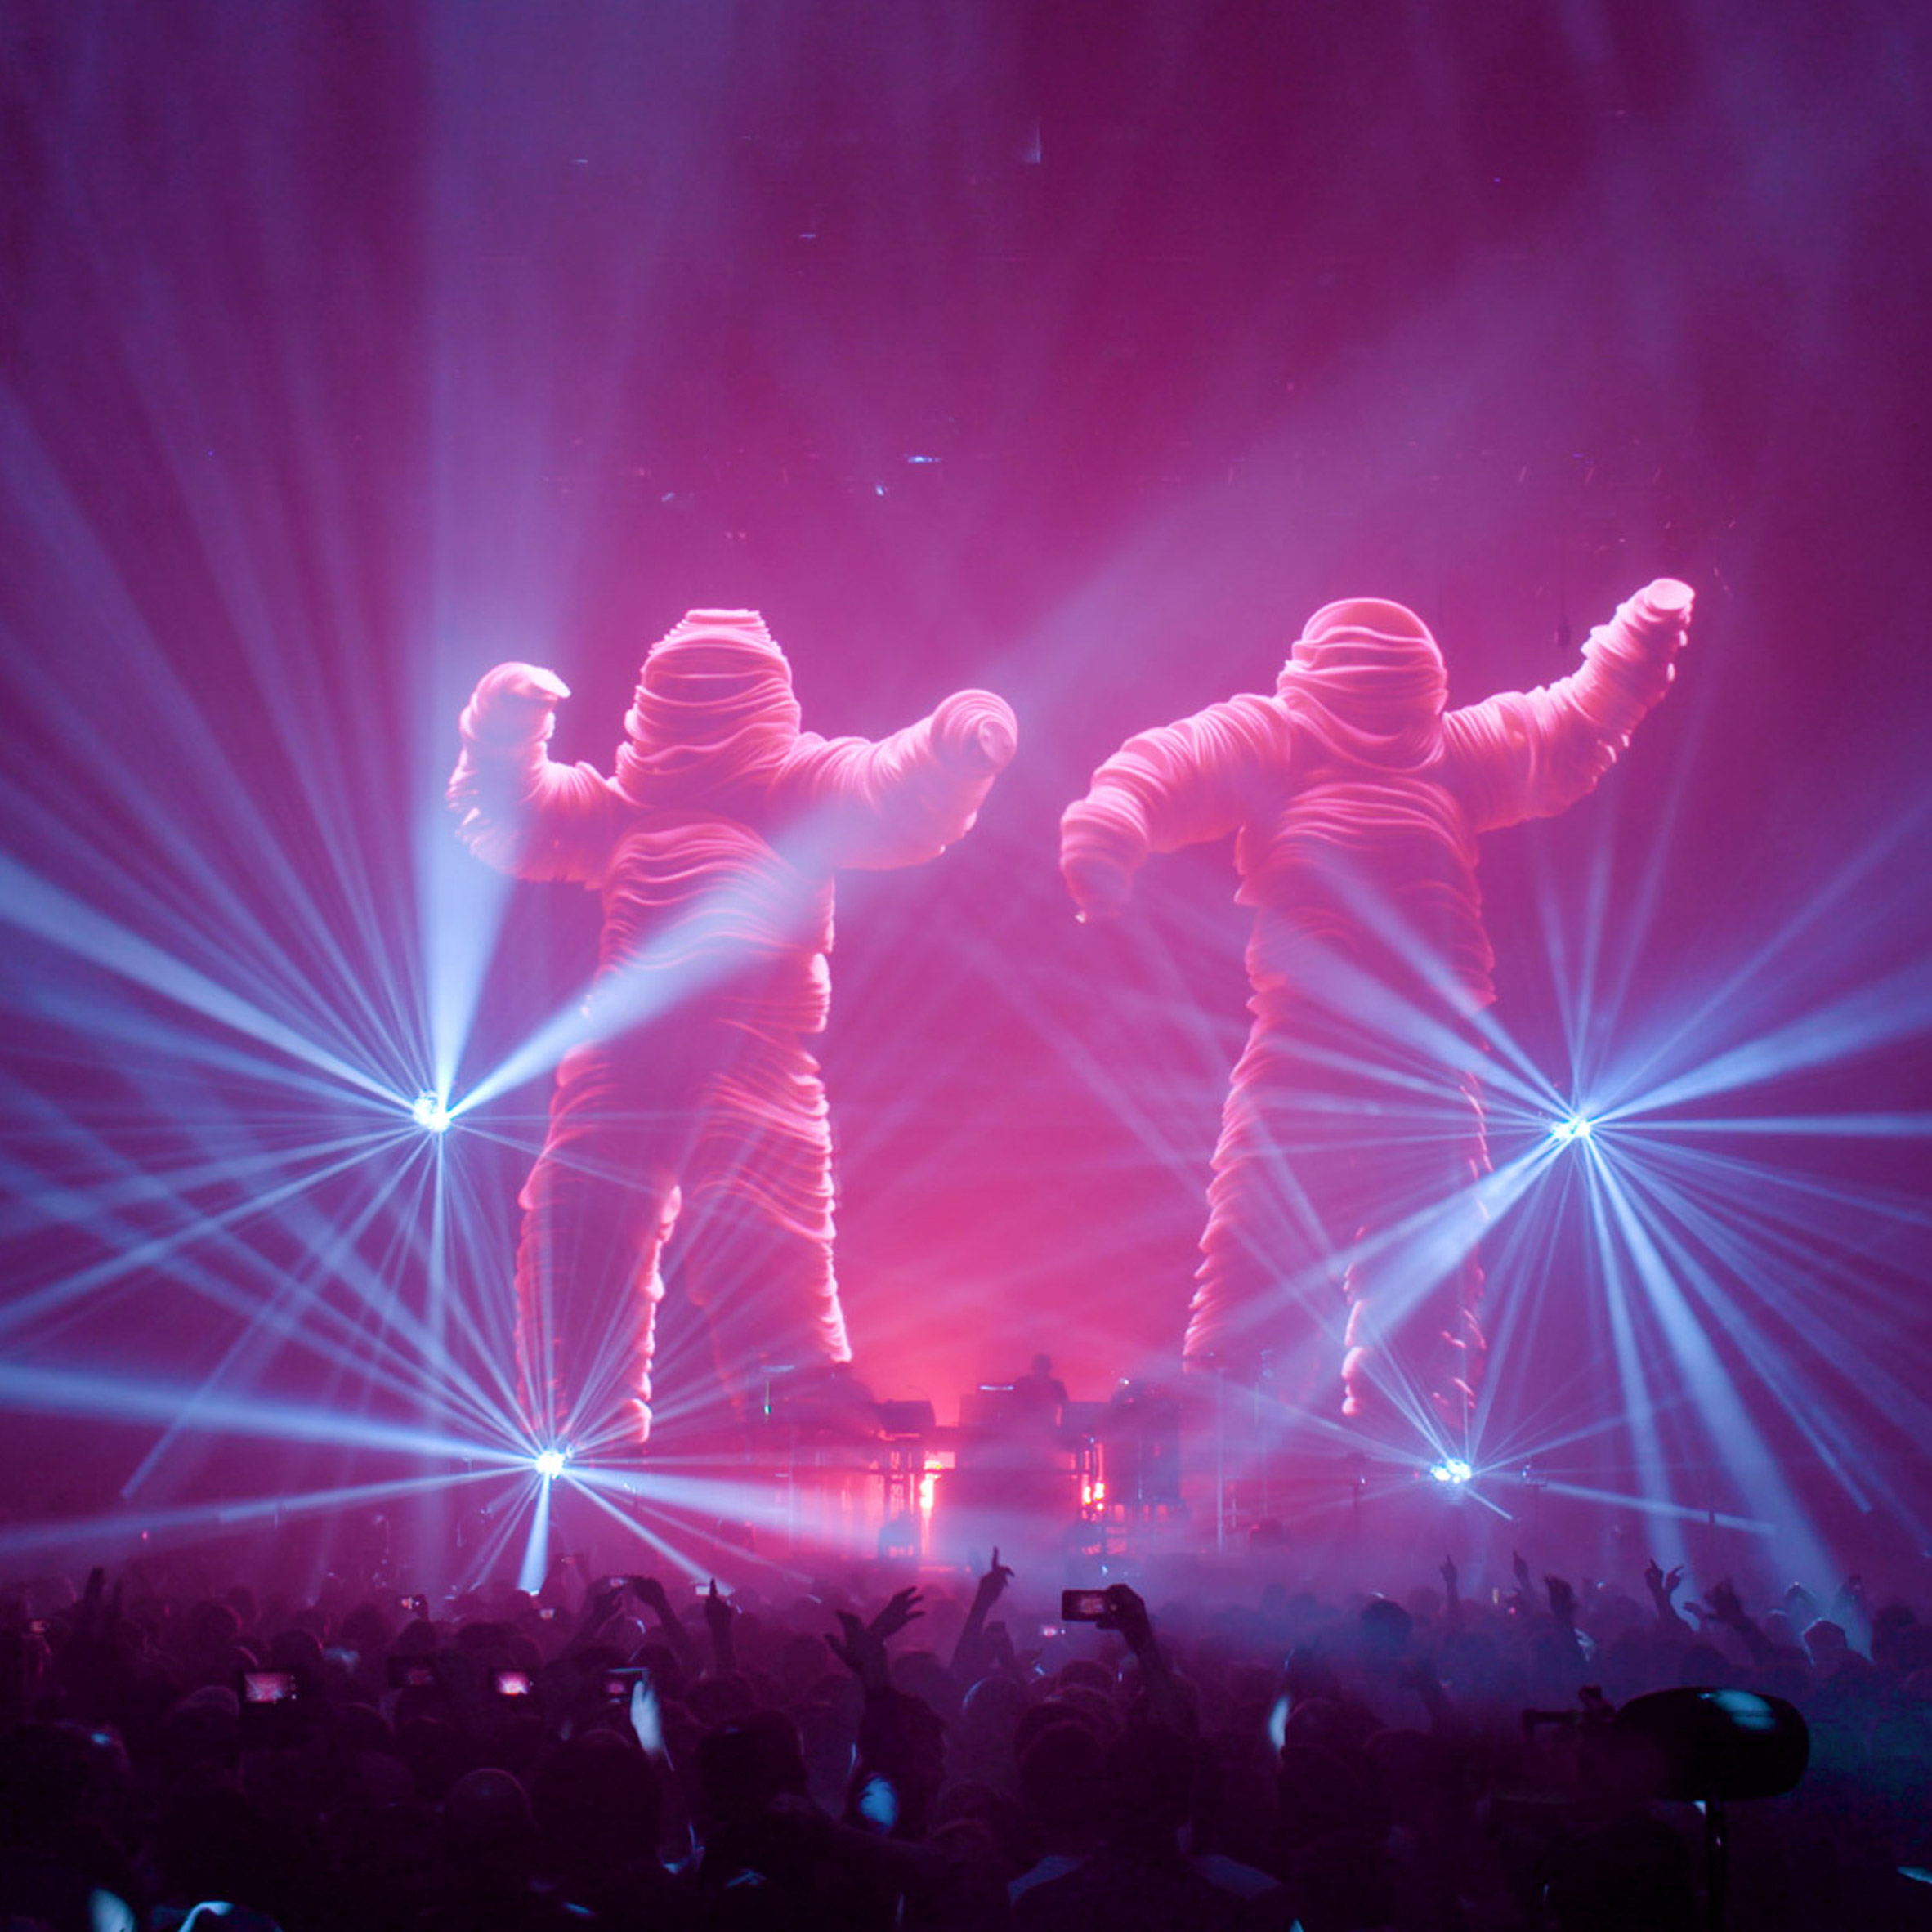 marcus lyall and adam smith show designers for the chemical brothers